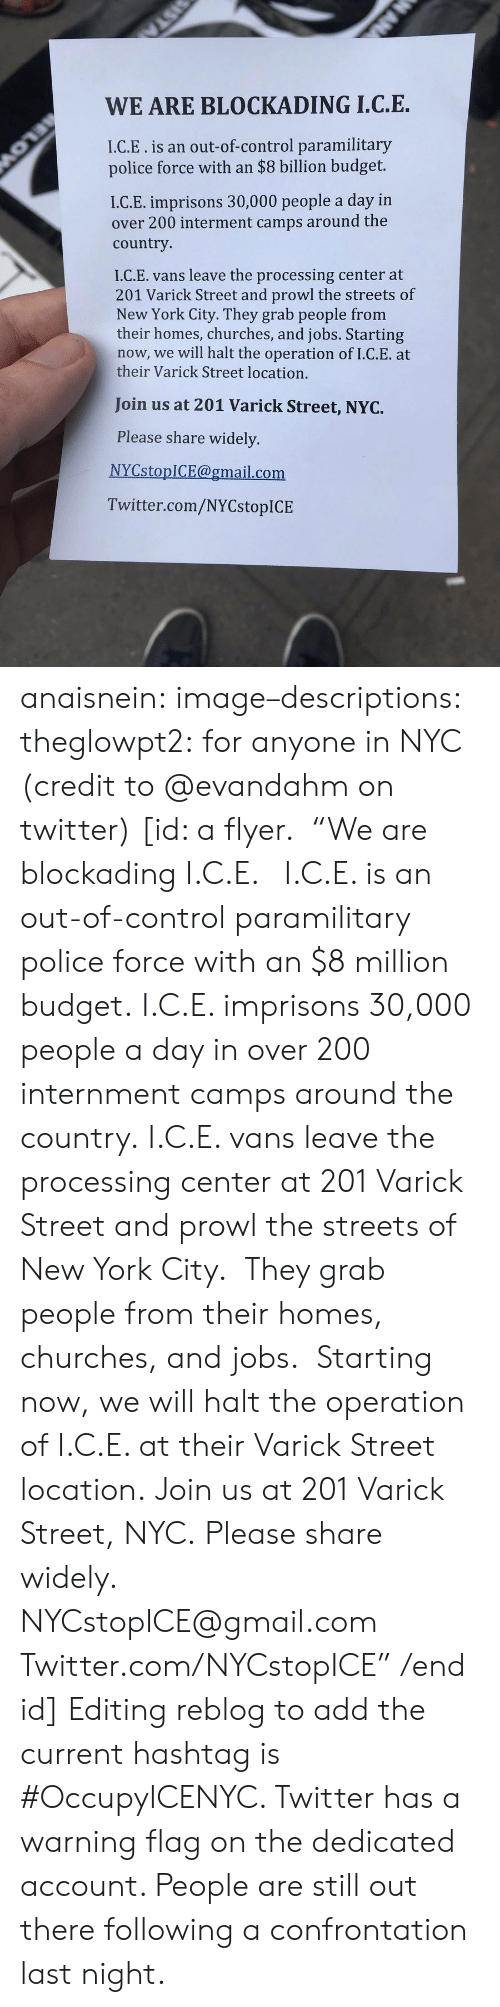 "prowl: WE ARE BLOCKADING I.C.E.  I.C.E.is an out-of-control paramilitary  police force with an $8 billion budget.  I.C.E. imprisons 30,000 people a day in  over 200 interment camps around the  country  I.C.E. vans leave the processing center at  201 Varick Street and prowl the streets of  New York City. They grab people from  their homes, churches, and jobs. Starting  now, we will halt the operation of I.C.E. at  their Varick Street location.  Join us at 201 Varick Street, NYC.  Please share widely.  NYCstopICE@gmail.com  Twitter.com/NYCstopICE anaisnein: image–descriptions:  theglowpt2: for anyone in NYC (credit to @evandahm on twitter) [id: a flyer.  ""We are blockading I.C.E.   I.C.E. is an out-of-control paramilitary police force with an $8 million budget. I.C.E. imprisons 30,000 people a day in over 200 internment camps around the country. I.C.E. vans leave the processing center at 201 Varick Street and prowl the streets of New York City.  They grab people from their homes, churches, and jobs.  Starting now, we will halt the operation of I.C.E. at their Varick Street location. Join us at 201 Varick Street, NYC. Please share widely. NYCstopICE@gmail.com Twitter.com/NYCstopICE"" /end id]   Editing reblog to add the current hashtag is #OccupyICENYC. Twitter has a warning flag on the dedicated account. People are still out there following a confrontation last night."